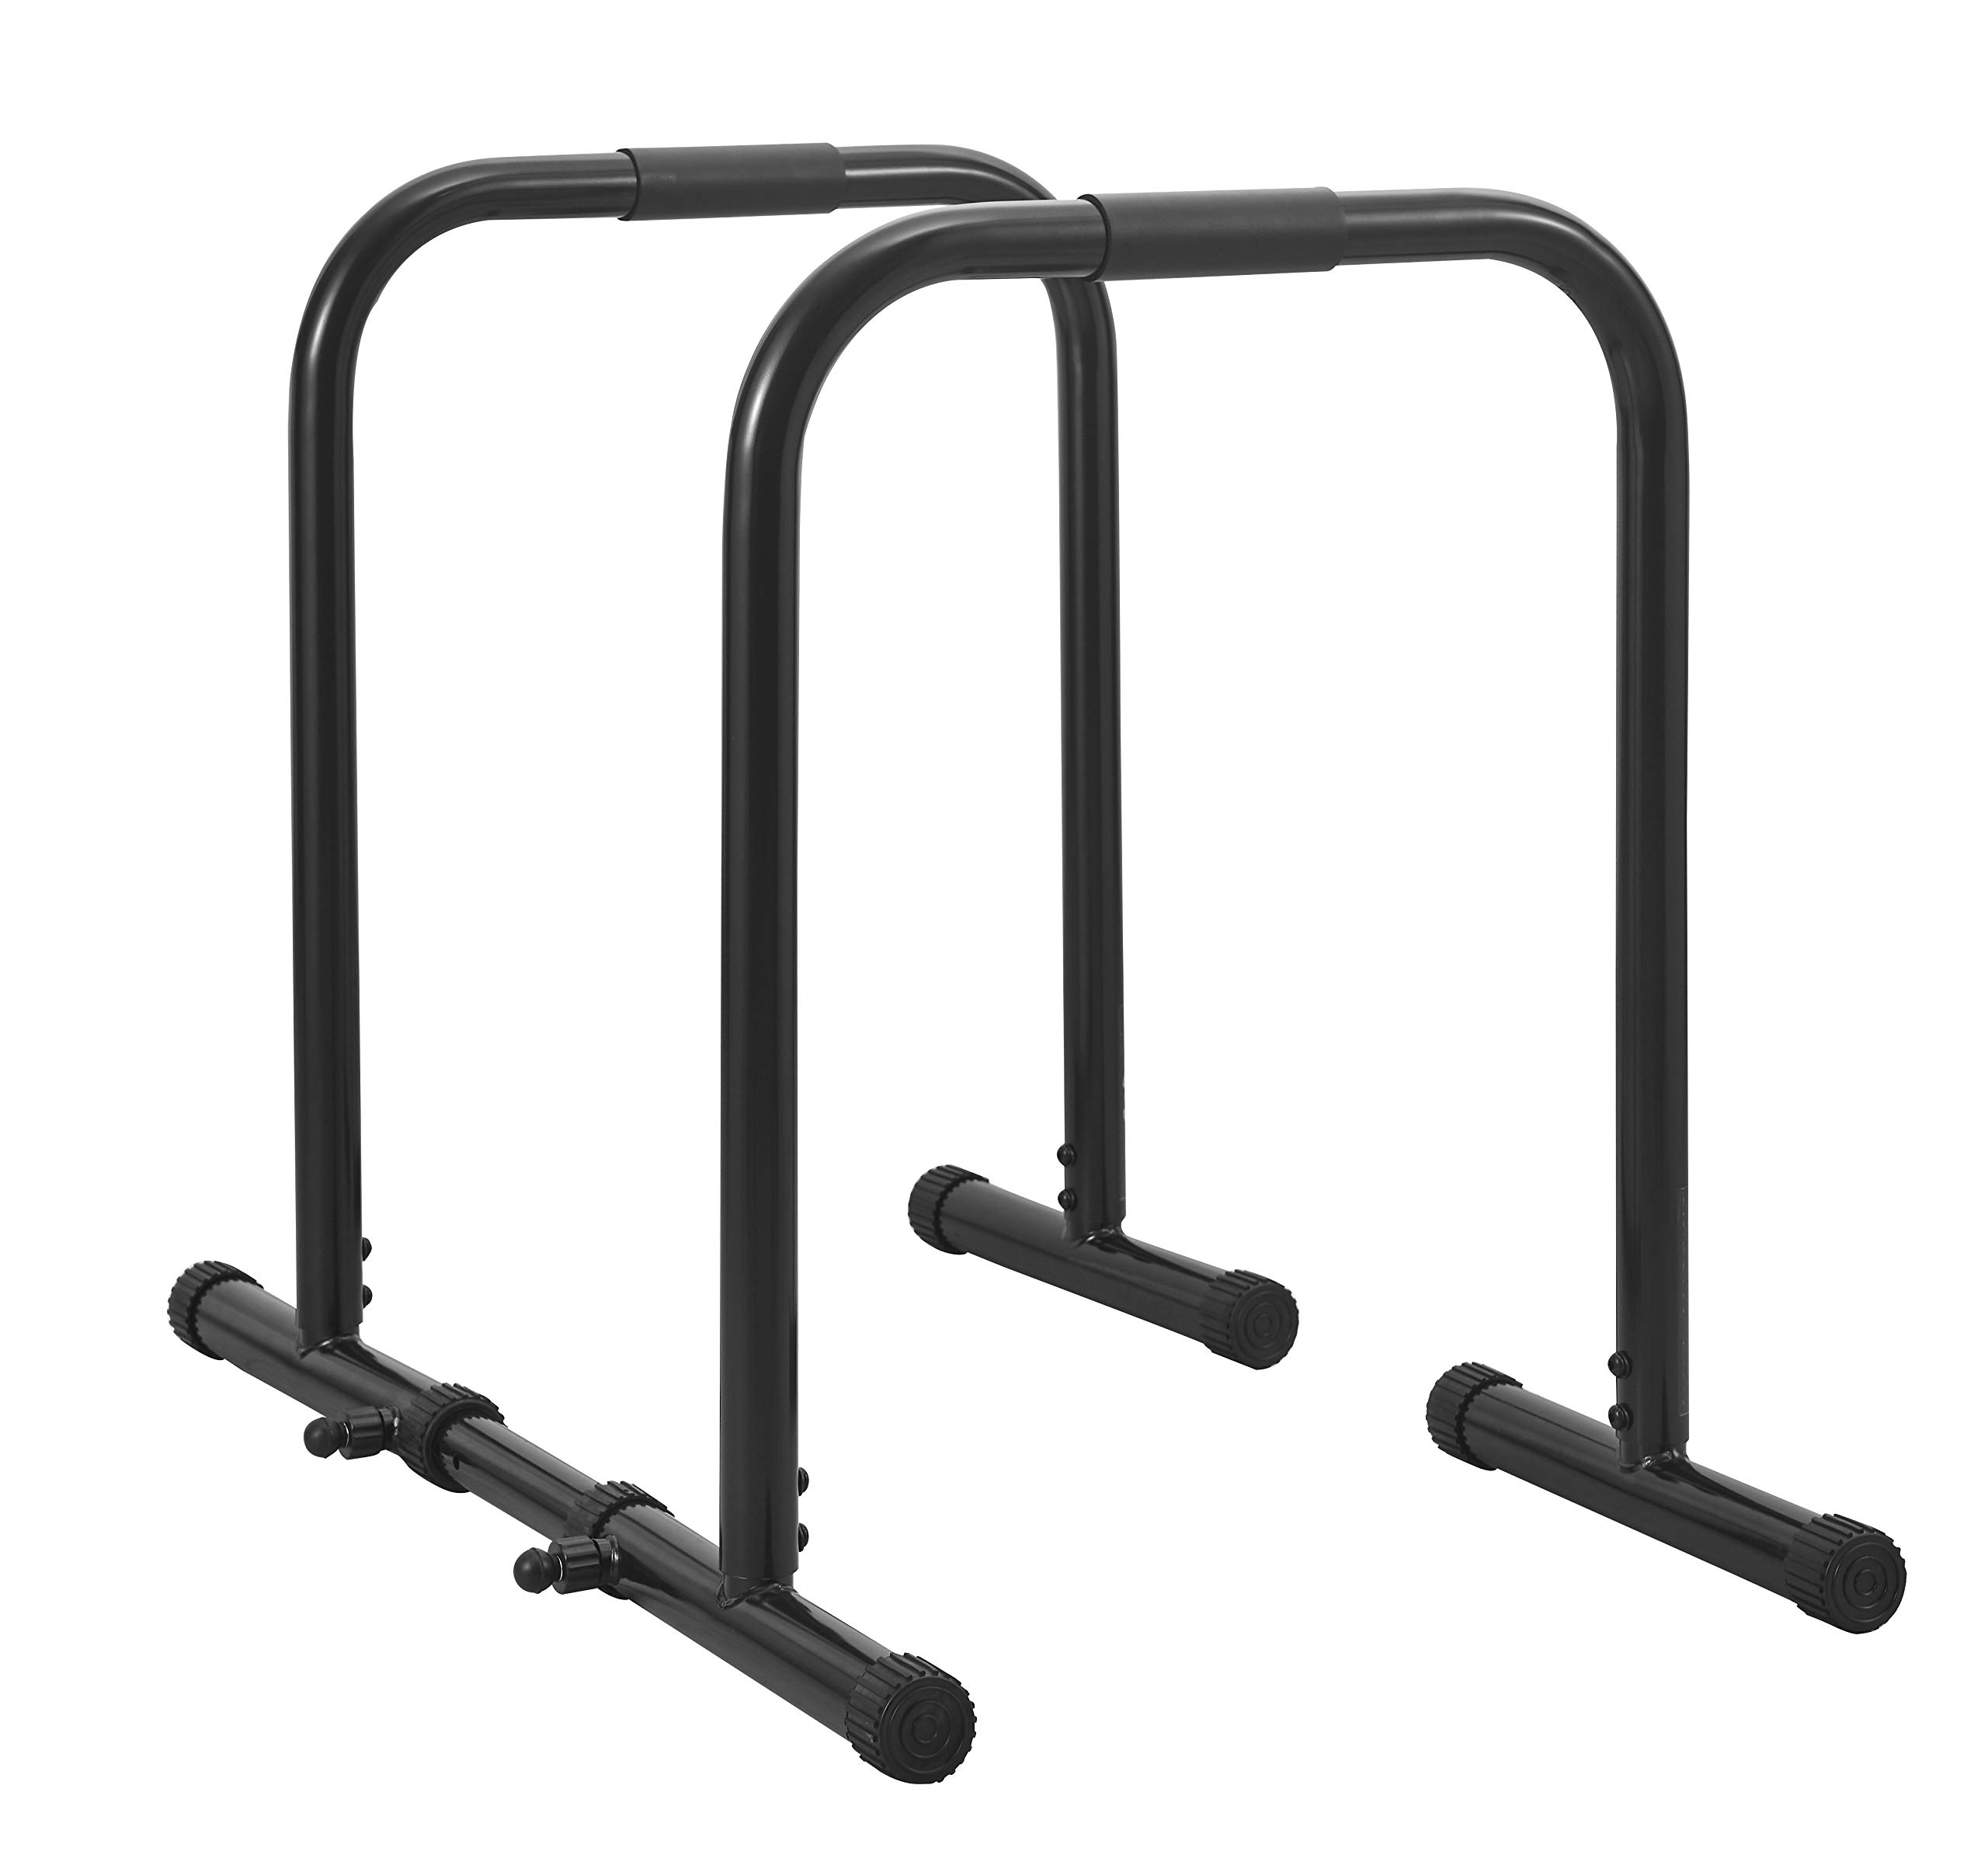 RELIFE REBUILD YOUR LIFE Dip Station Functional Heavy Duty Dip Stands Fitness Workout Dip bar Station Stabilizer Parallette Push Up Stand (Black) by RELIFE REBUILD YOUR LIFE (Image #1)